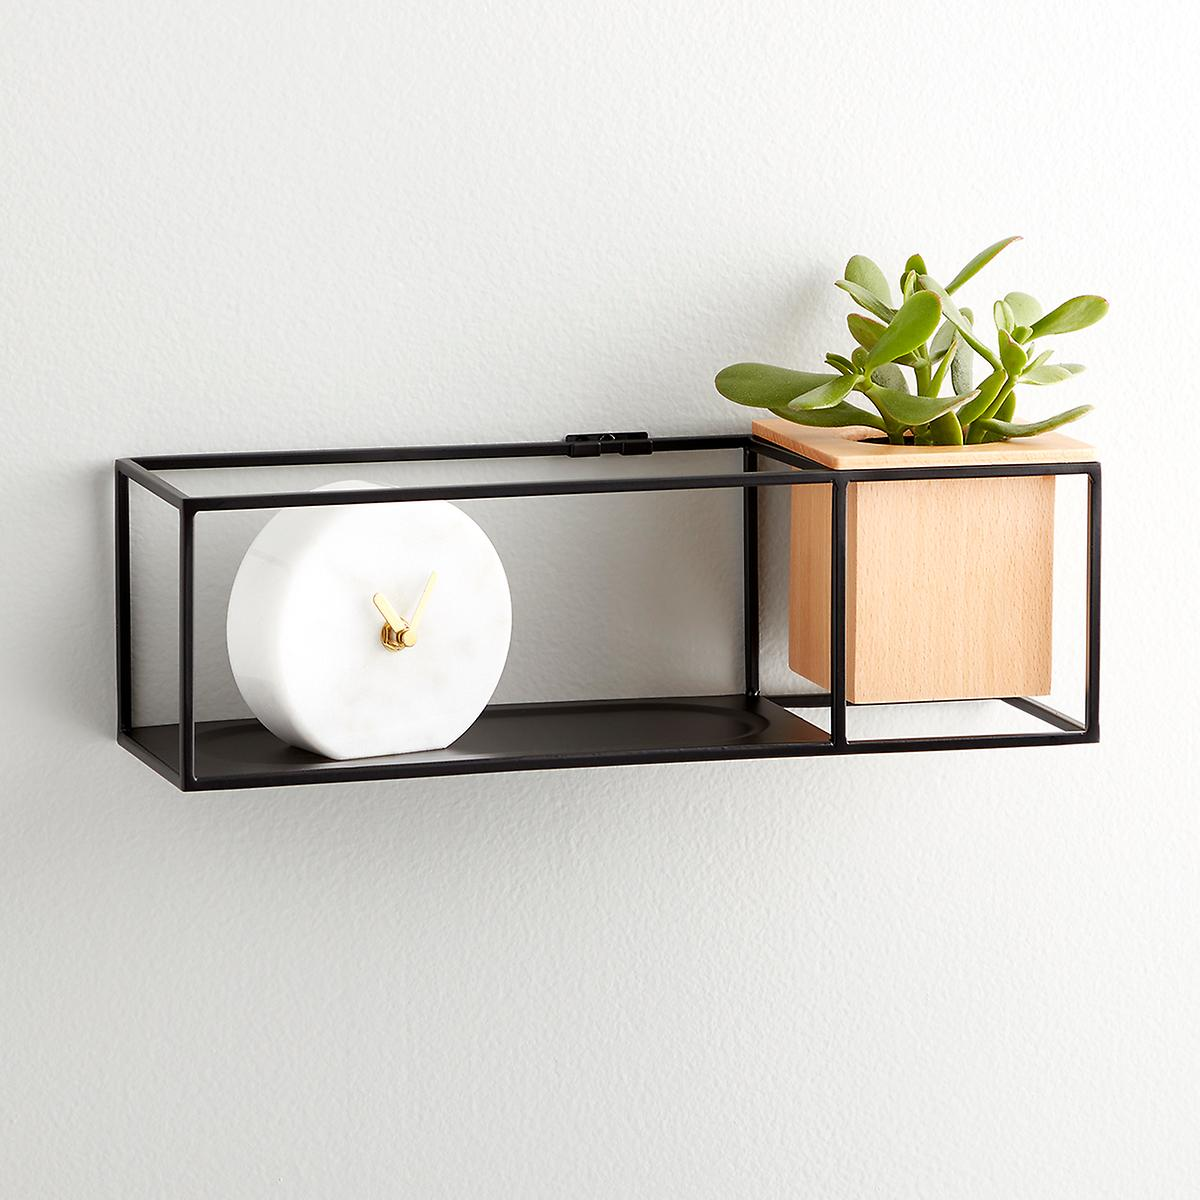 umbra small cubist wall shelf the container bla storage cube floating kmart bayfair ikea wood shelving unit short bookcase best fireplace mantels deep mounted shelves narrow